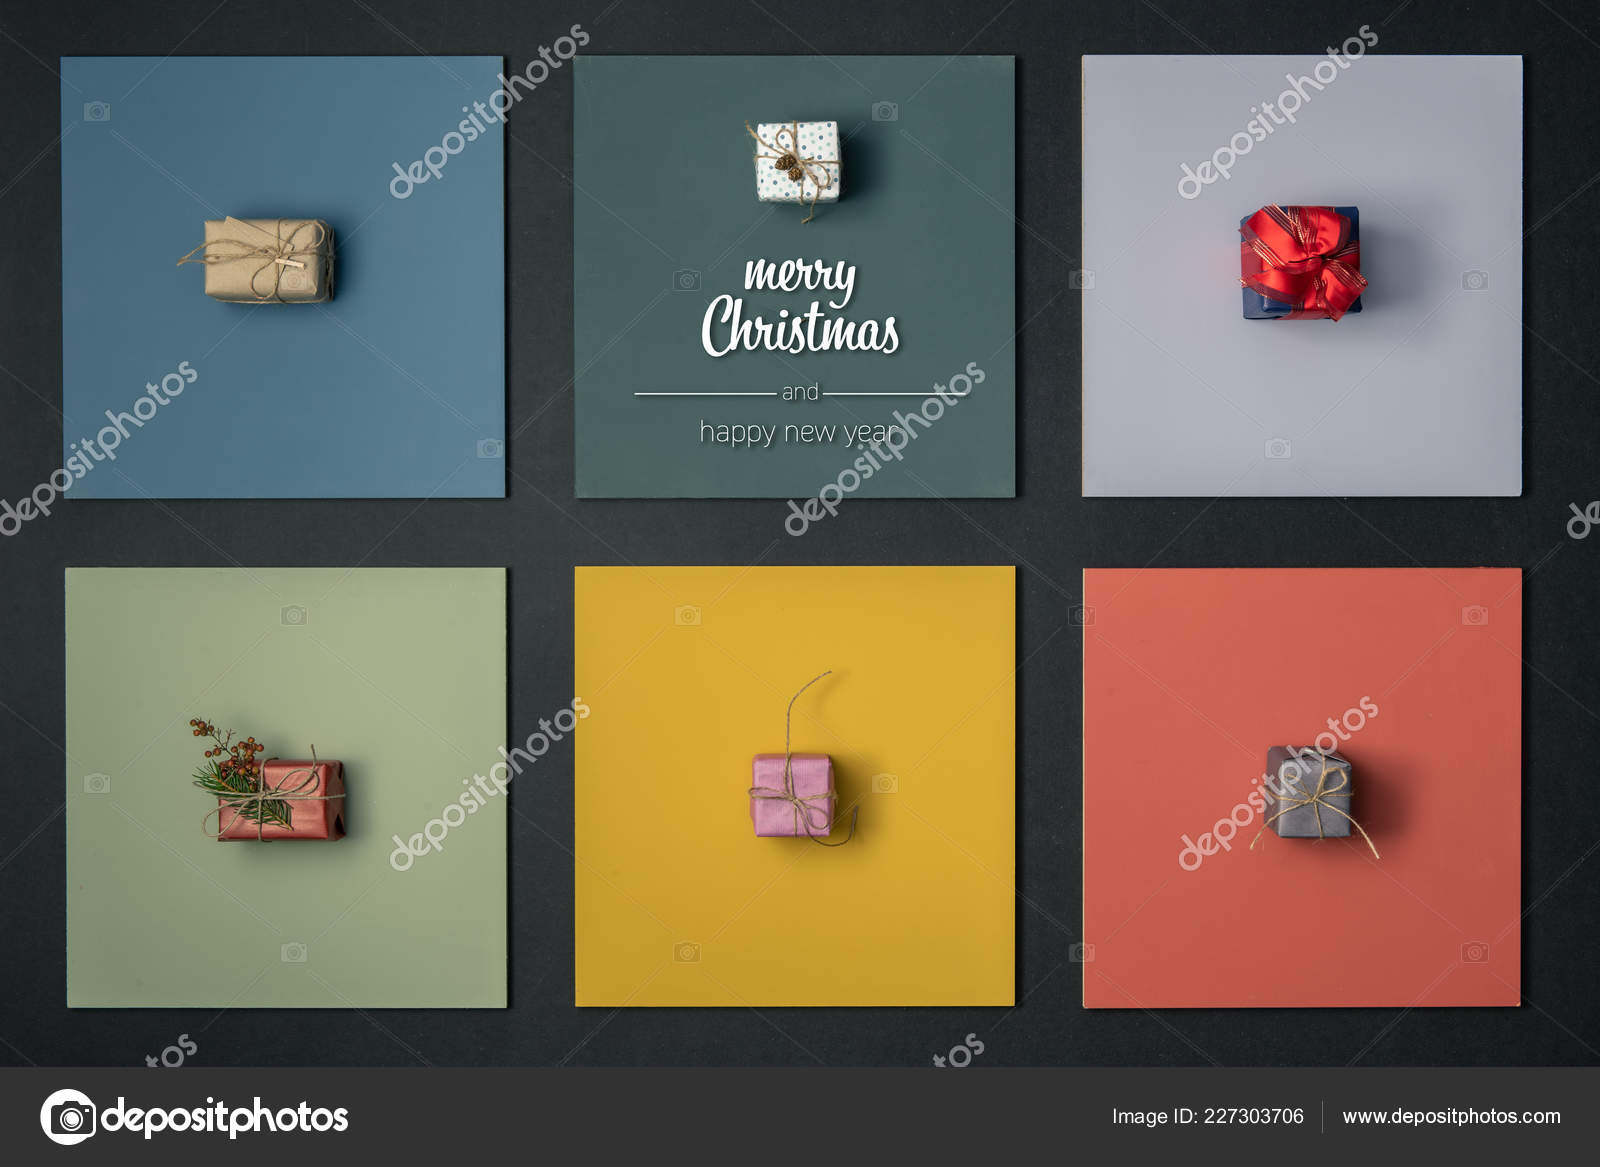 modern merry christmas and happy new year greetings in vertical top view colorful frames with gift